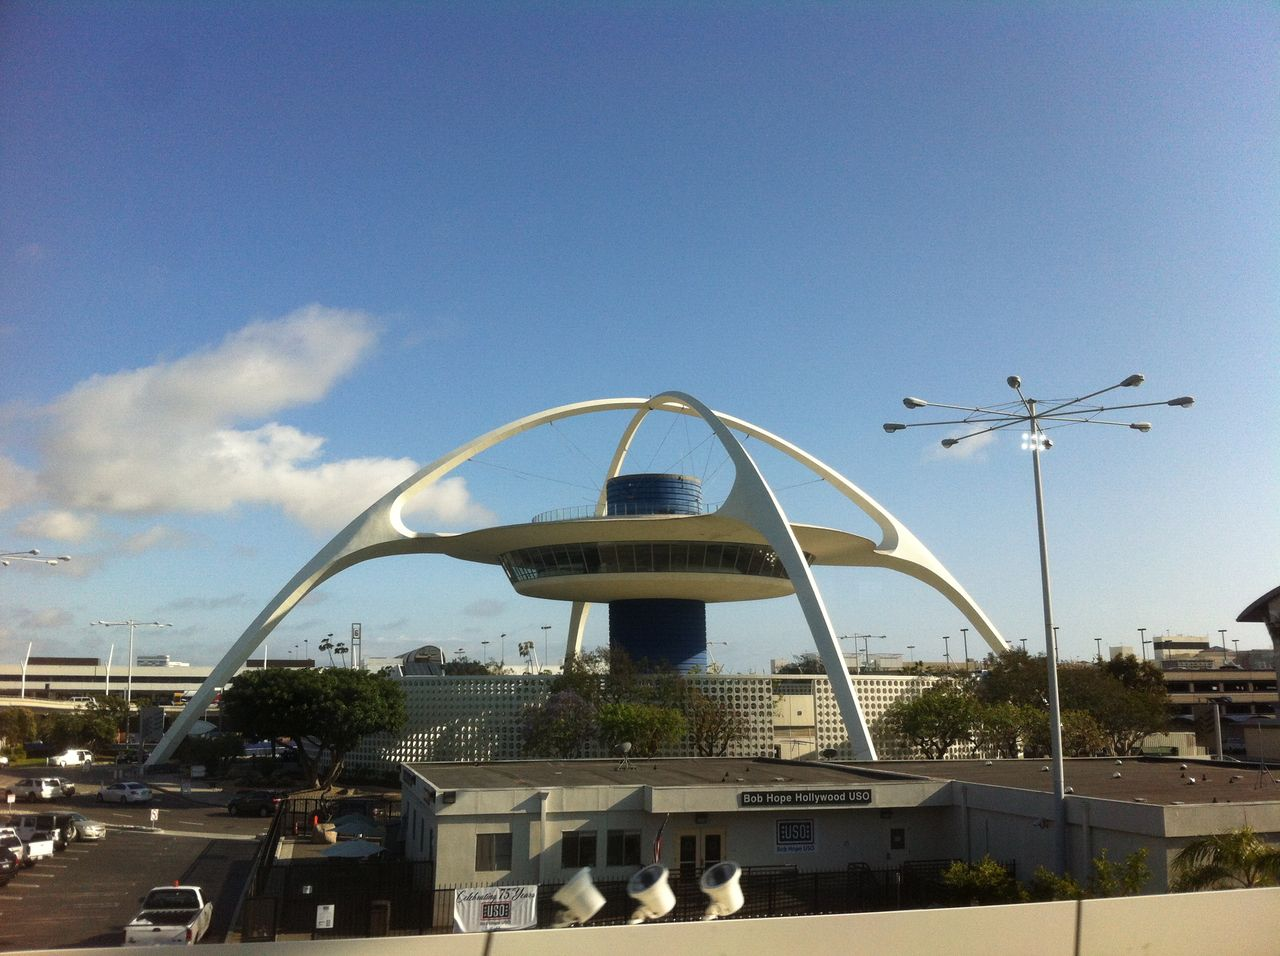 Economy Car Rental Lax Review